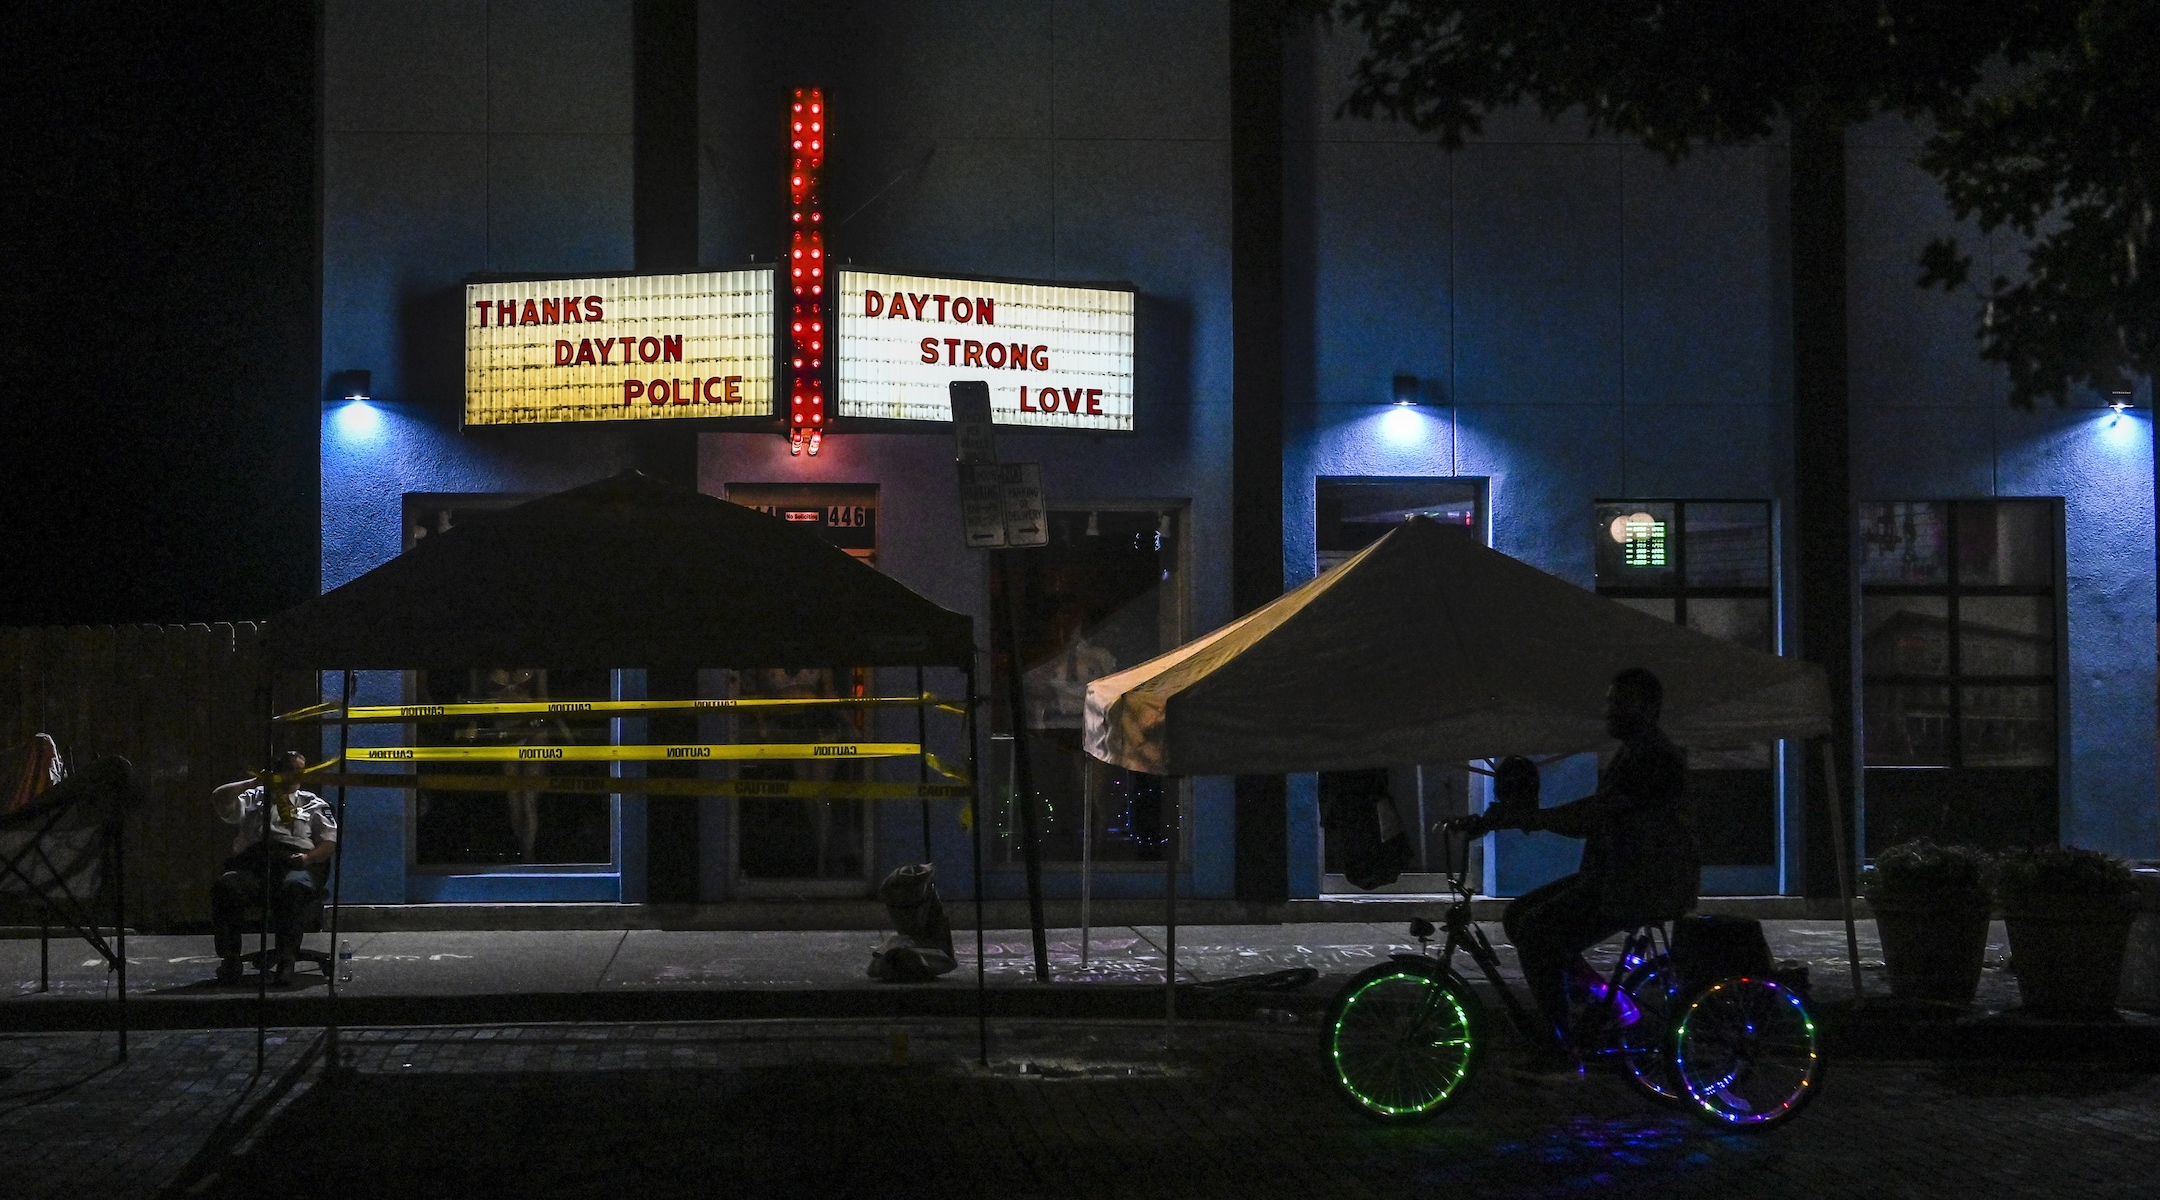 Security officers guard the scene of a mass shooting in Dayton, Ohio, Aug. 5, 2019. (Photo/JTA-Jahi Chikwendiu-The Washington Post via Getty Images)